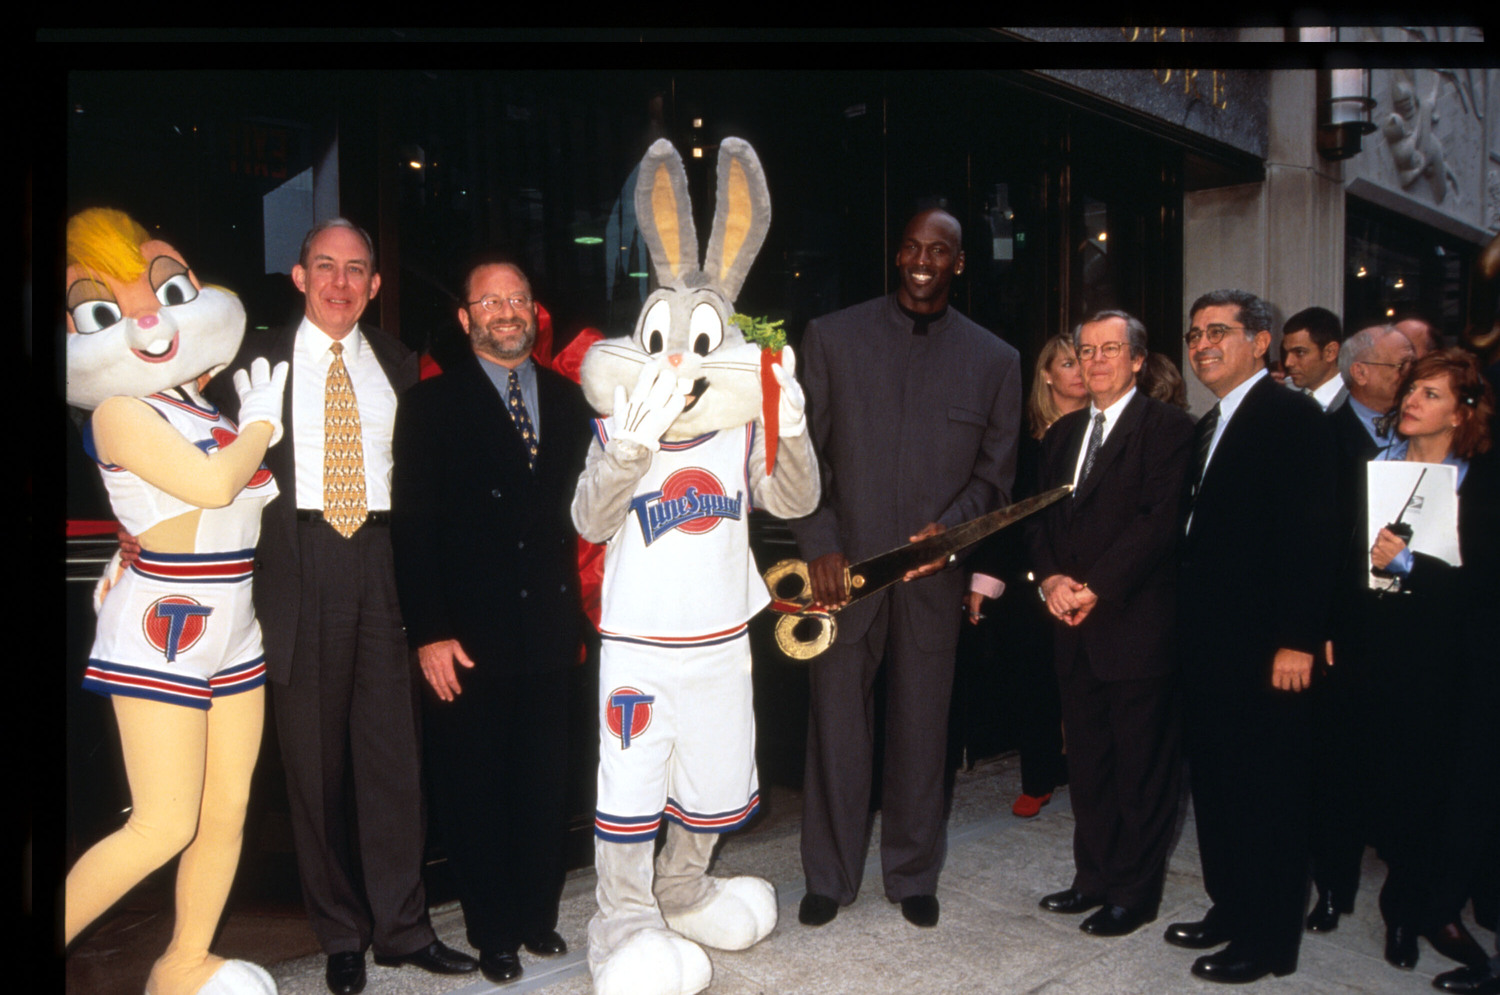 Michael Jordan, Bugs and Lola Bunny, and others in 1996.